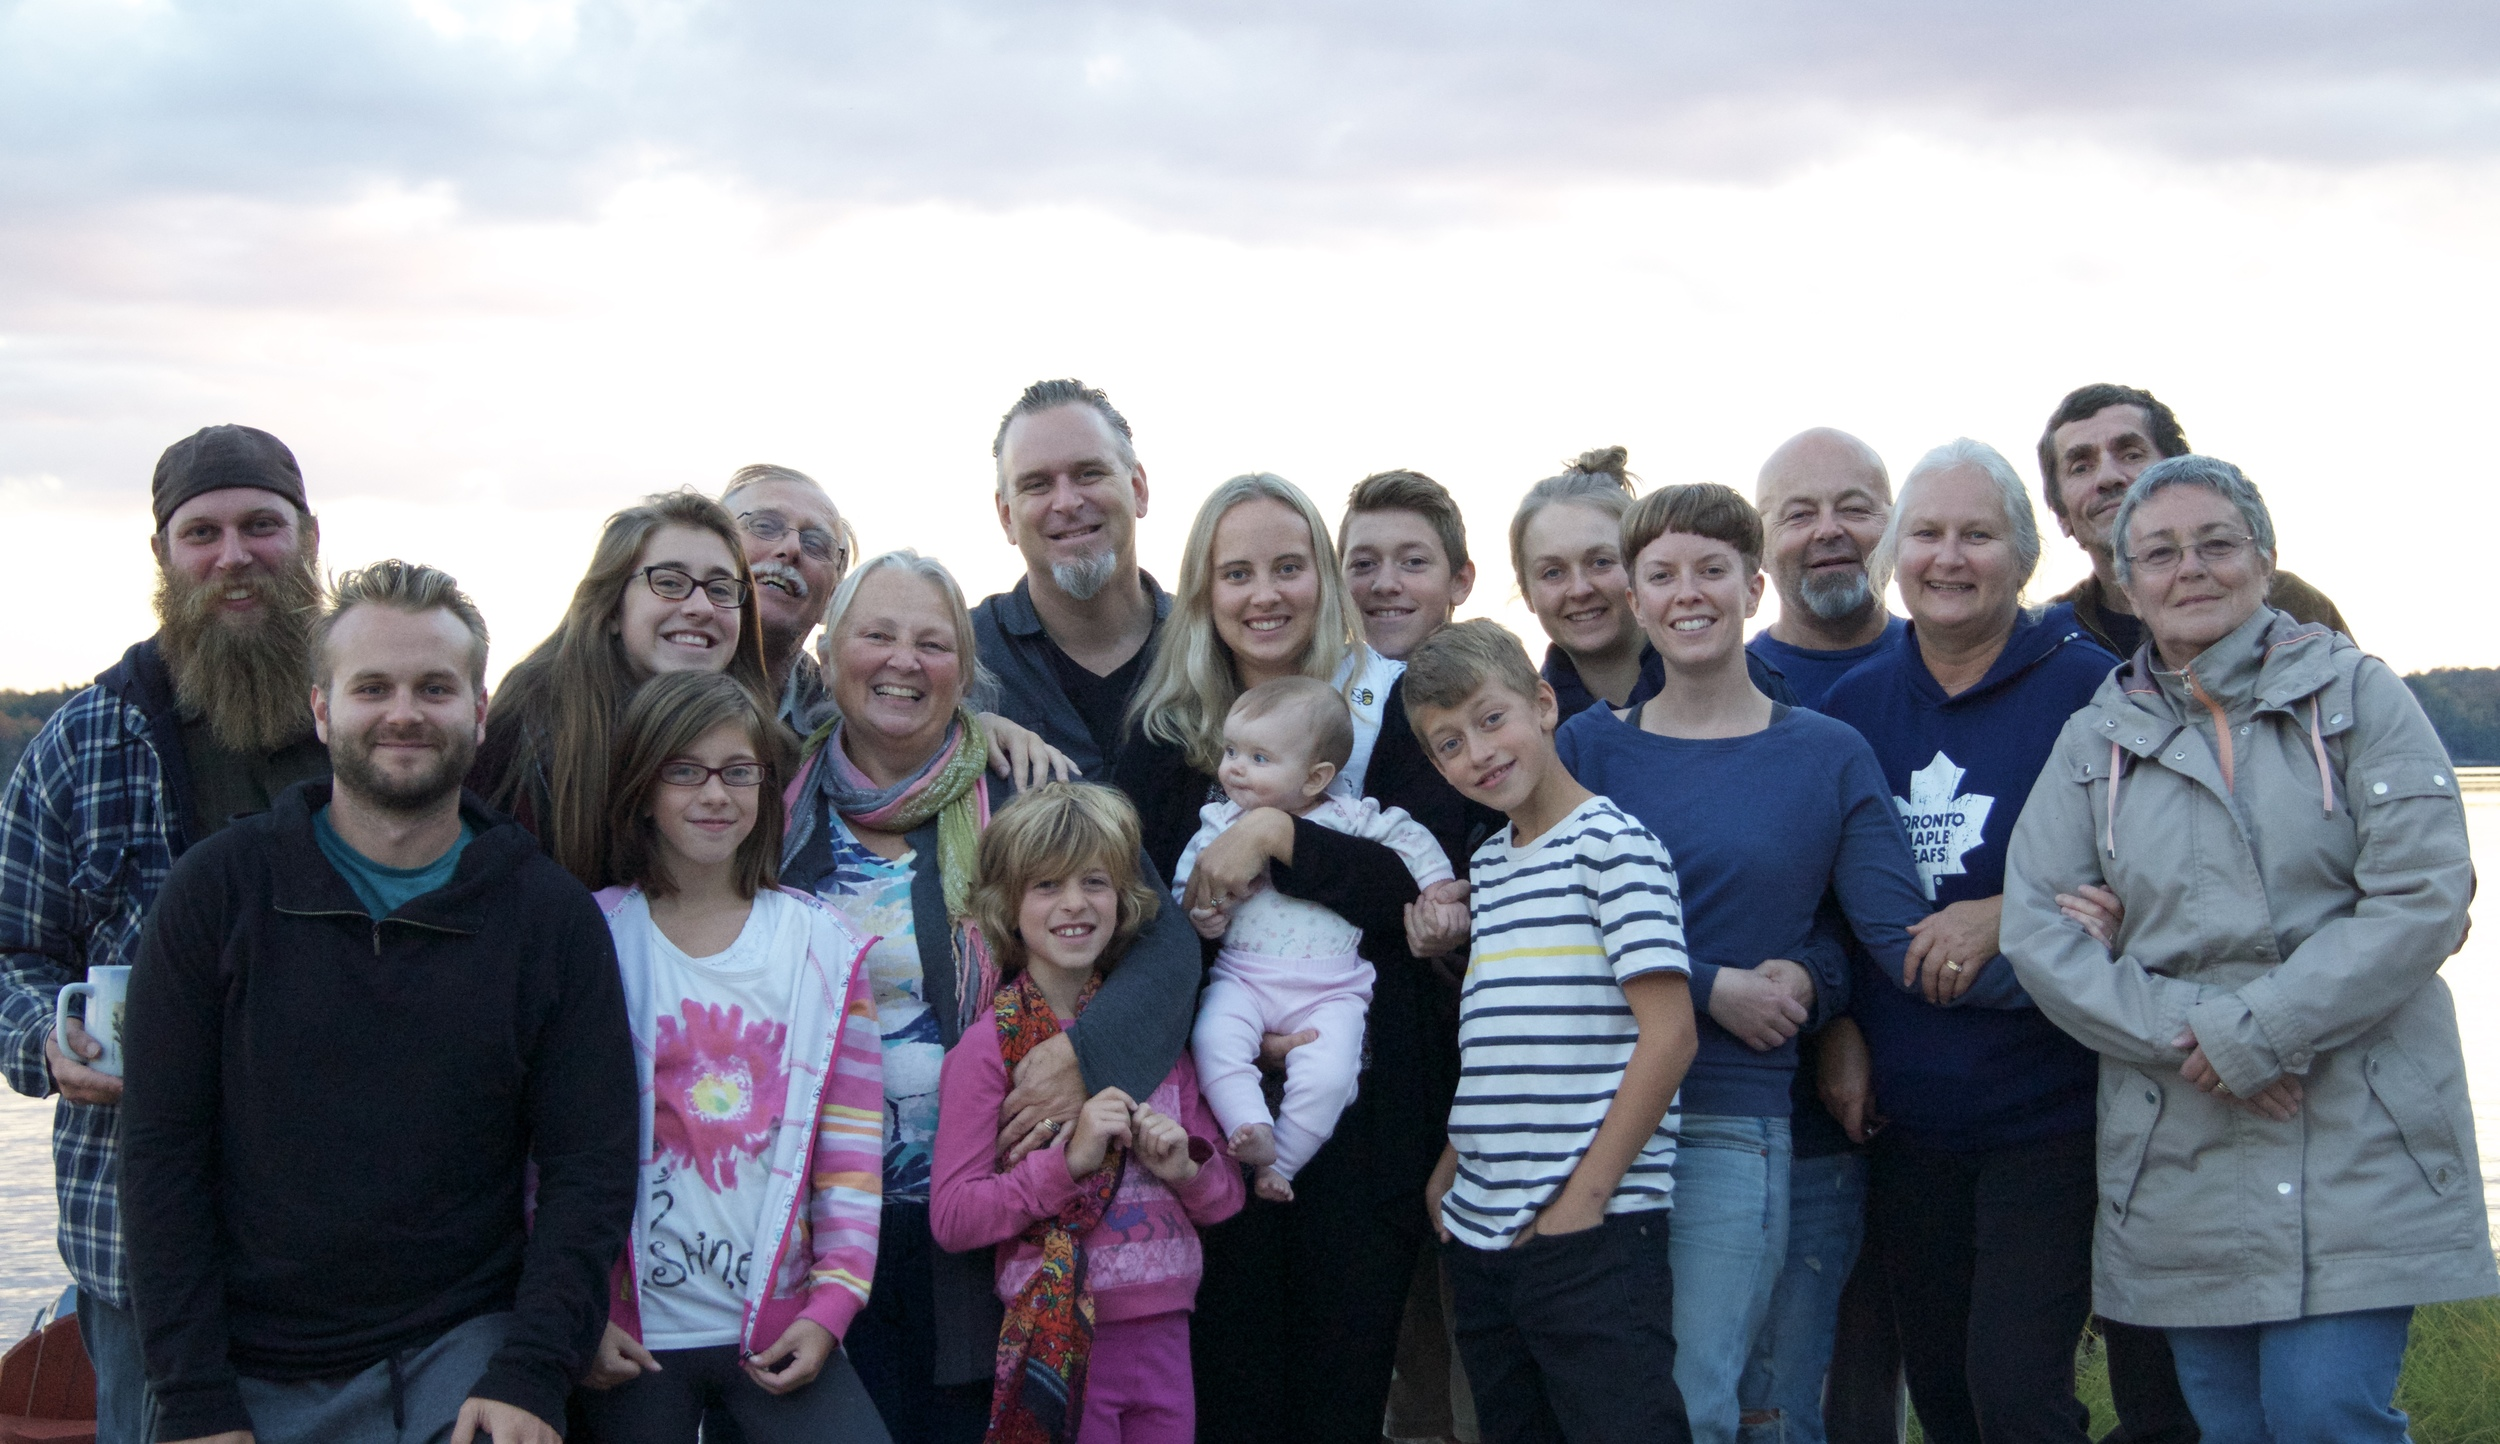 Family, Thanksgiving, Thankful, Cottage, Cottage Trip, Dusk Shot, Good looking people